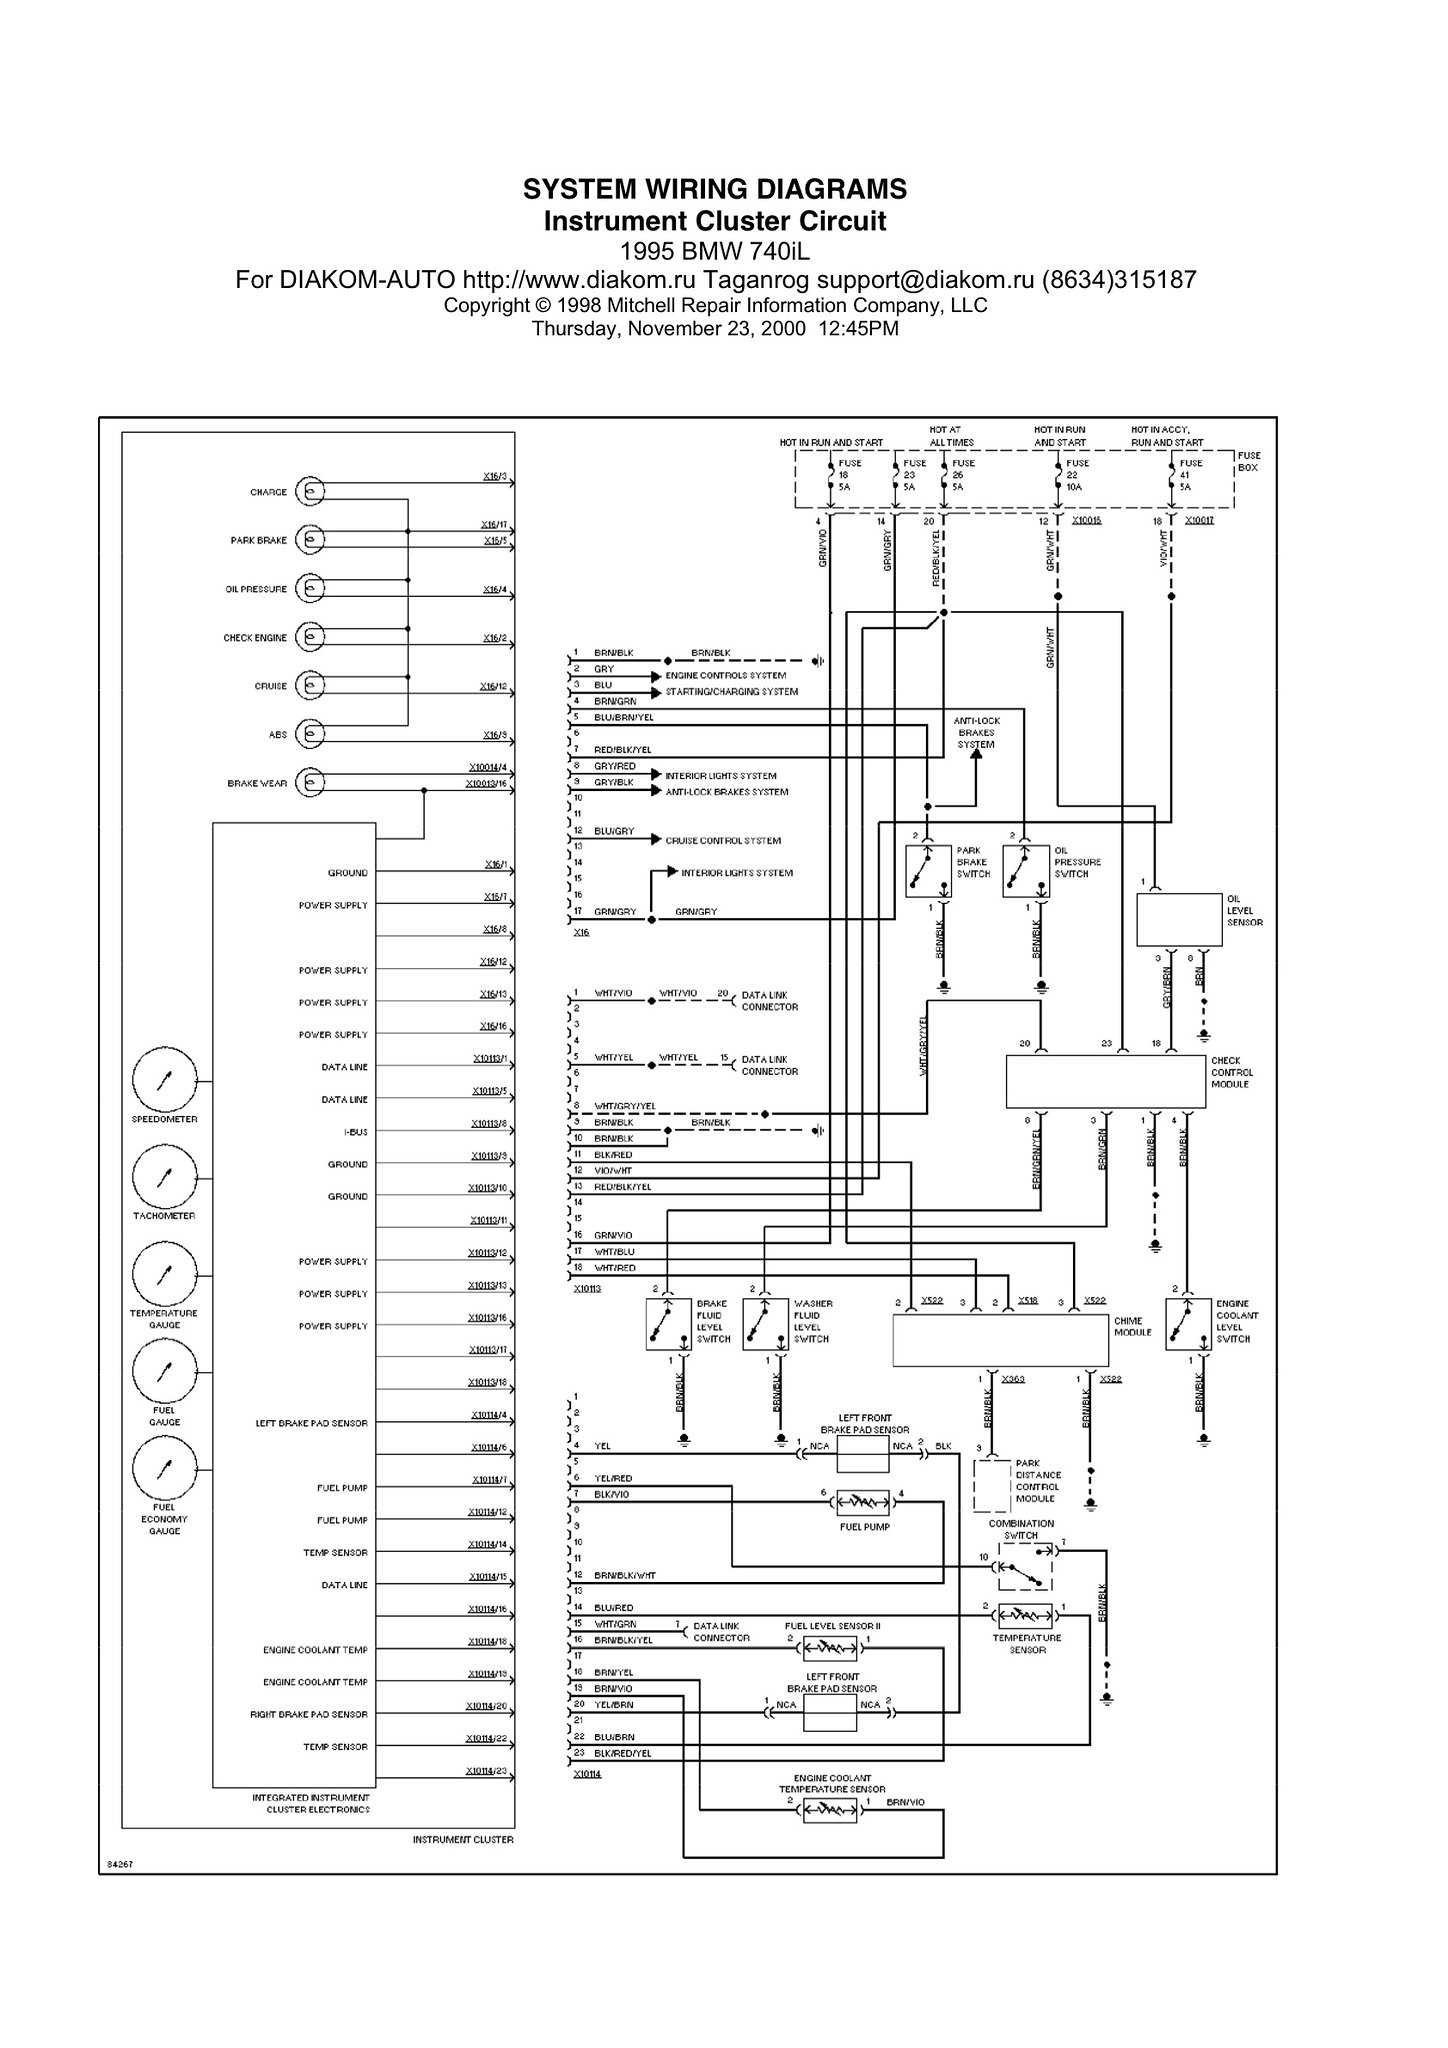 7703585142_dbc4ceb414_k bmw e39 wiring diagrams 1998 740i heated seat wiring diagram 2004 bmw 530i wiring diagrams at alyssarenee.co